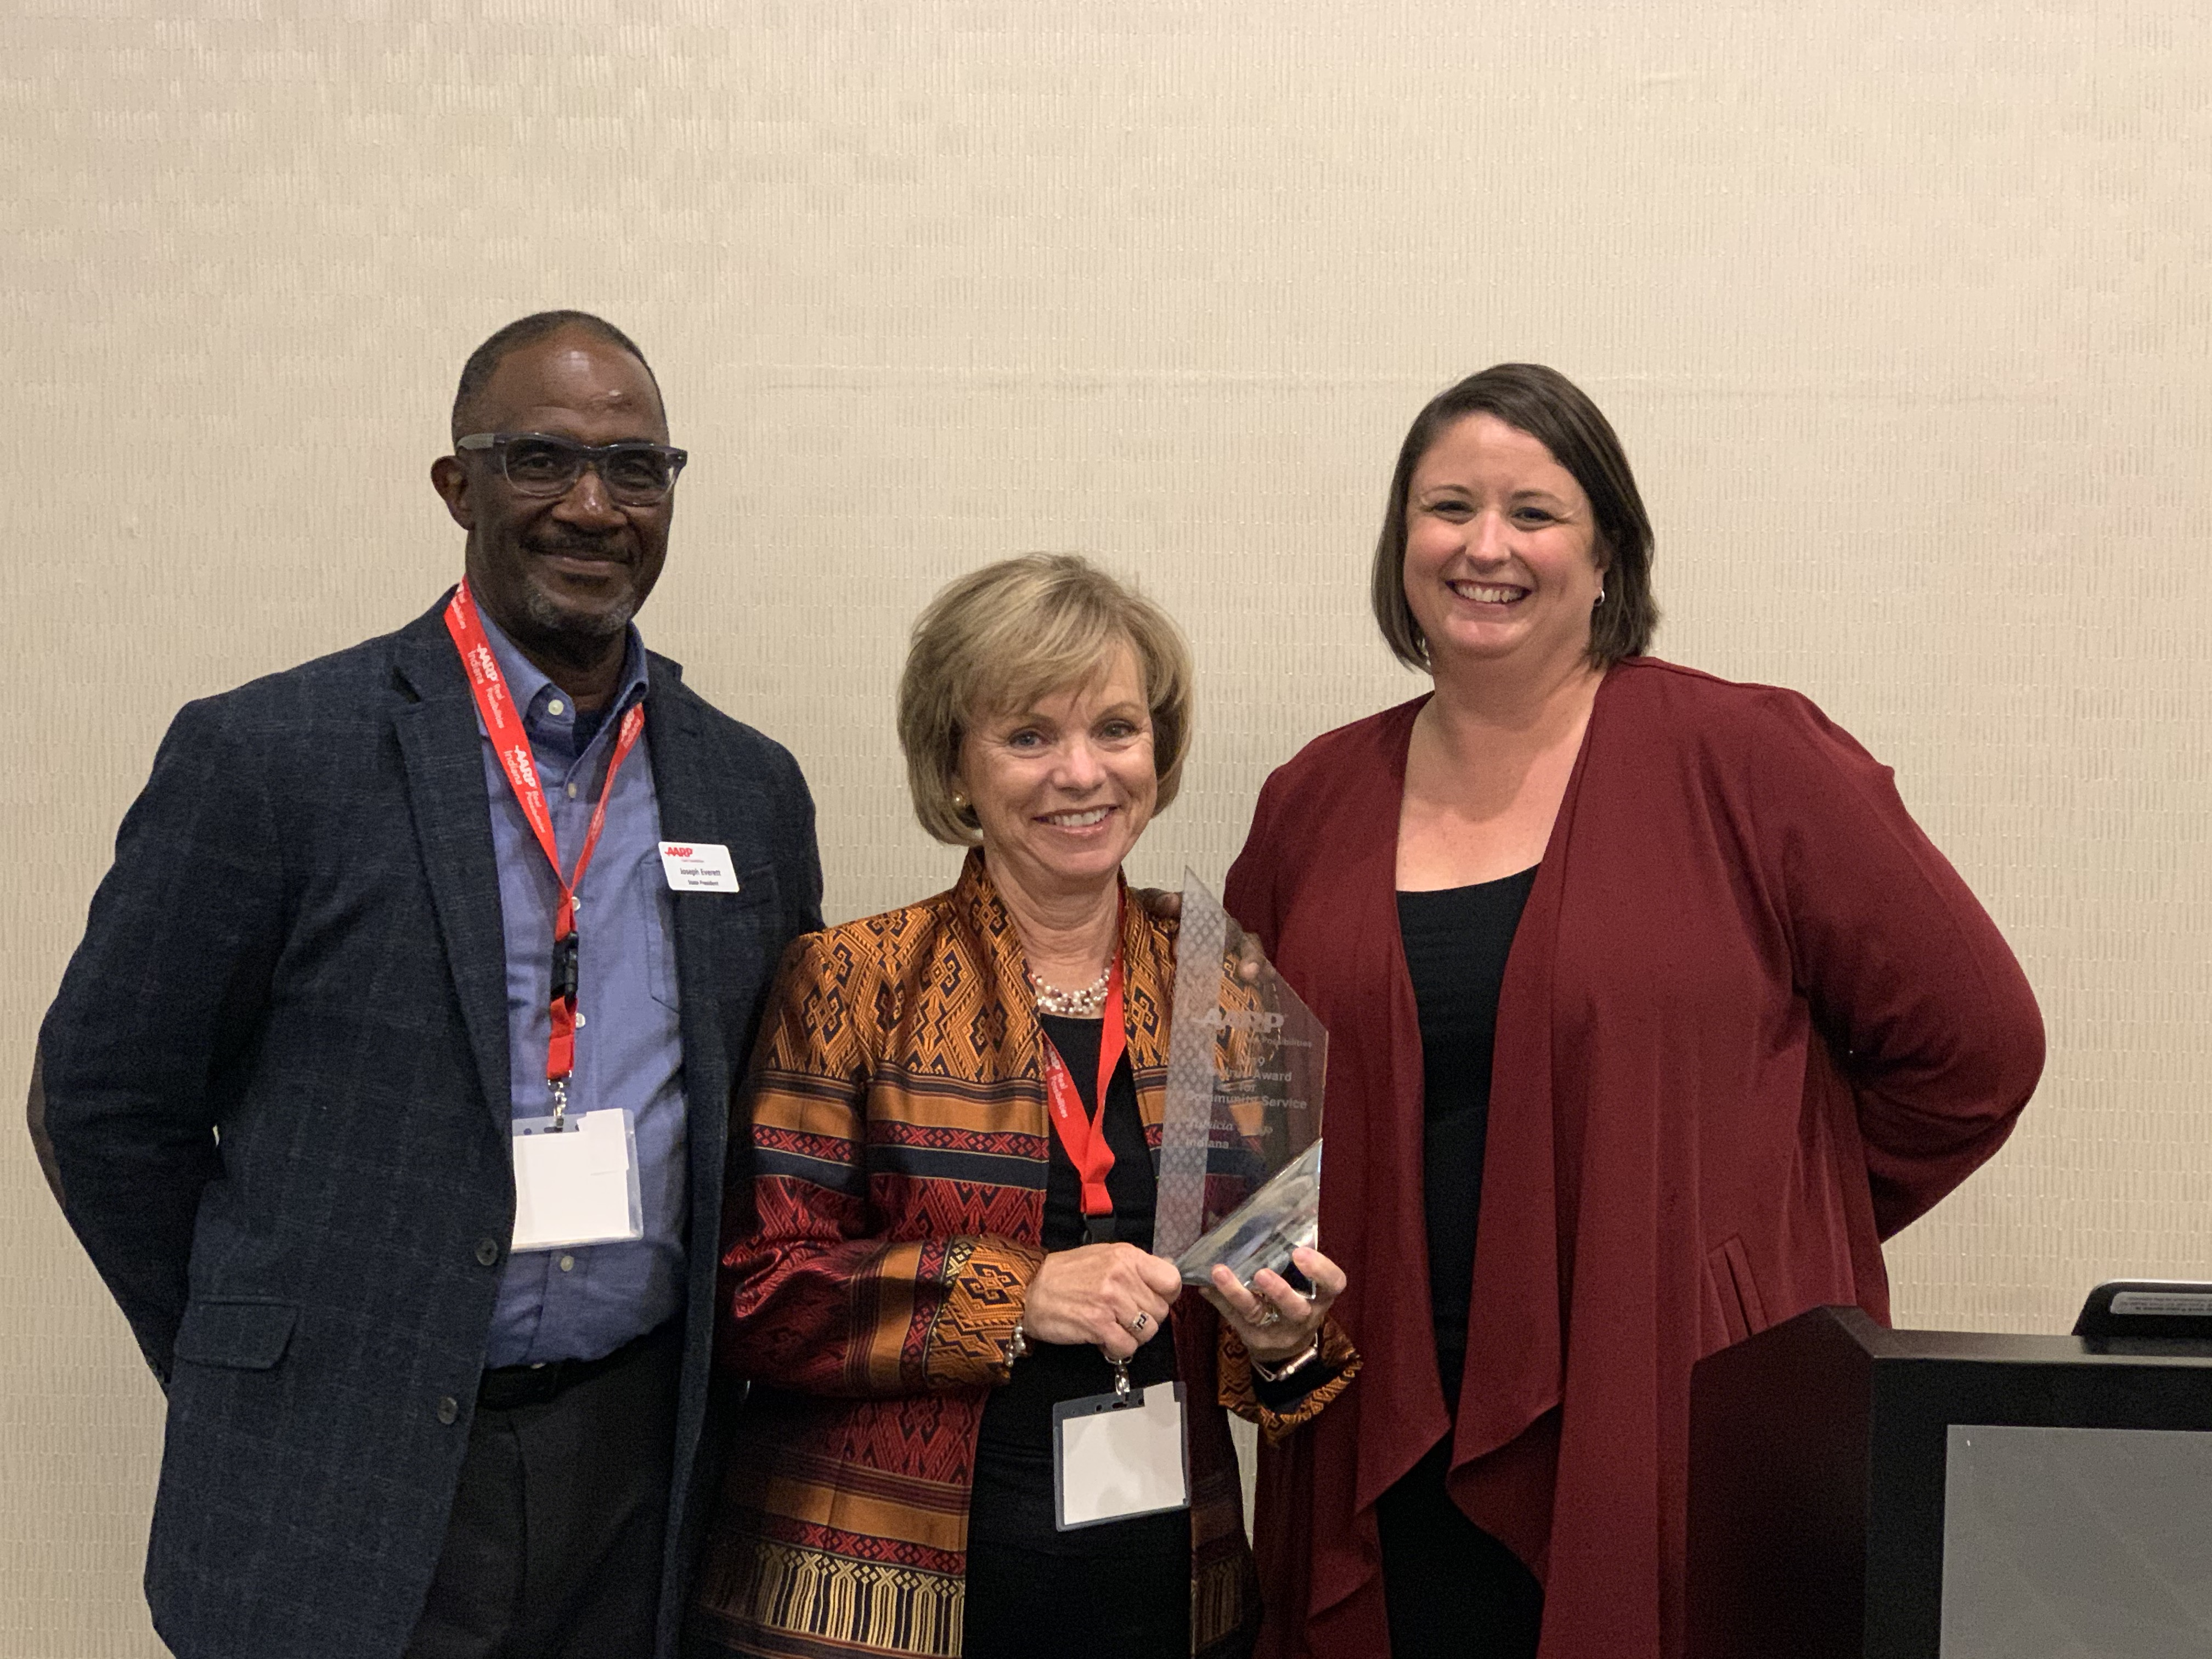 Tish Biggs received the Andrus Award and poses with AARP Indiana State President Joe Everett and State Director Sarah Waddle.